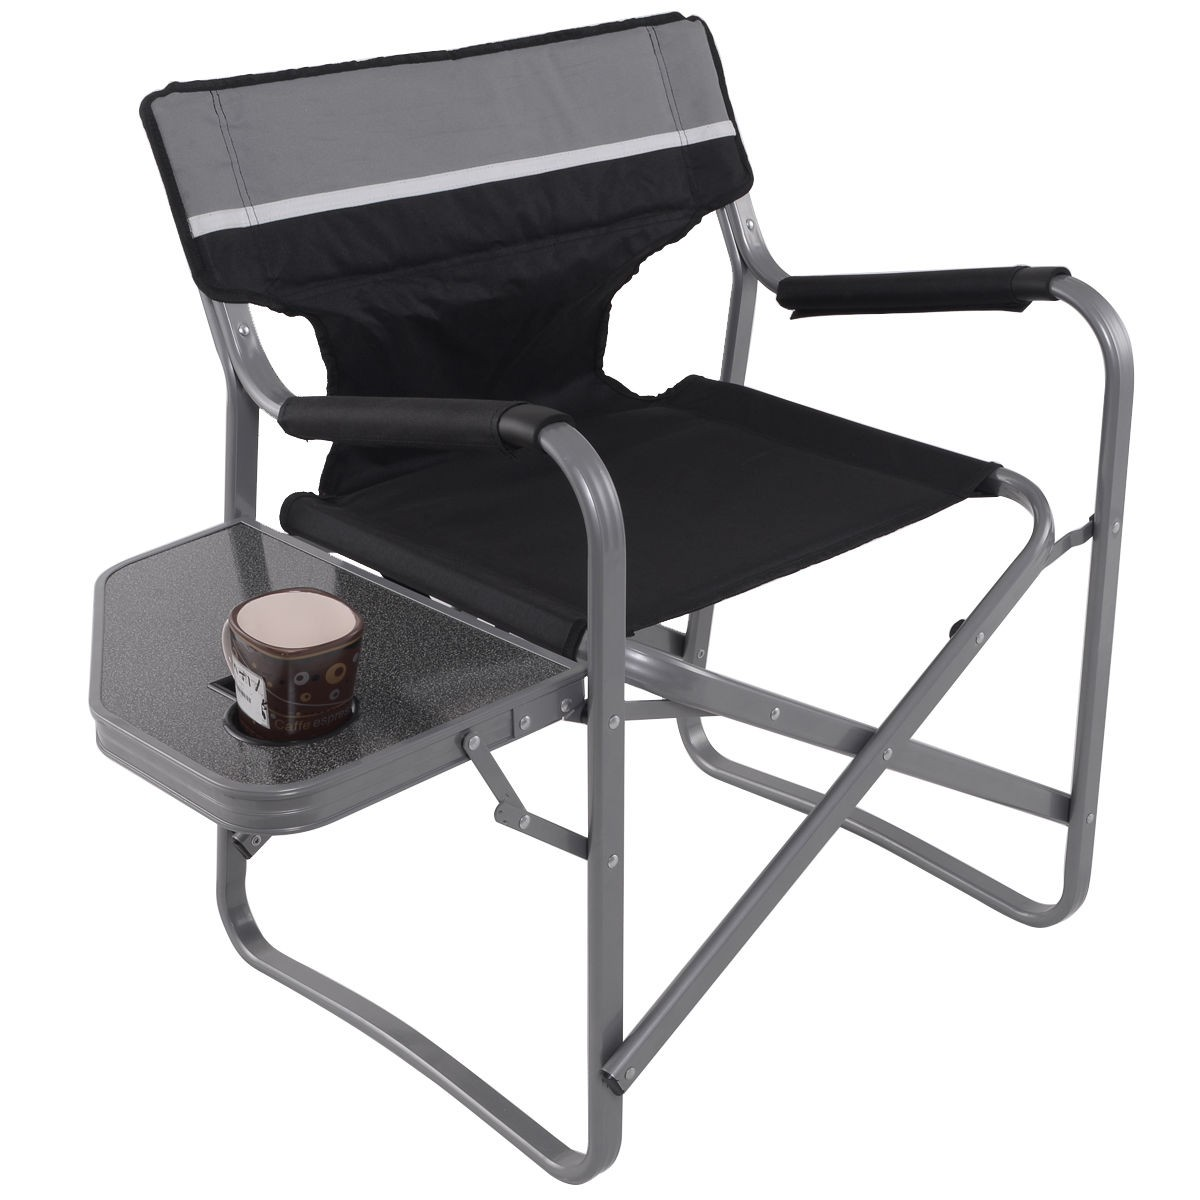 Folding Outdoor Camping Directors Chair with Cup Holder